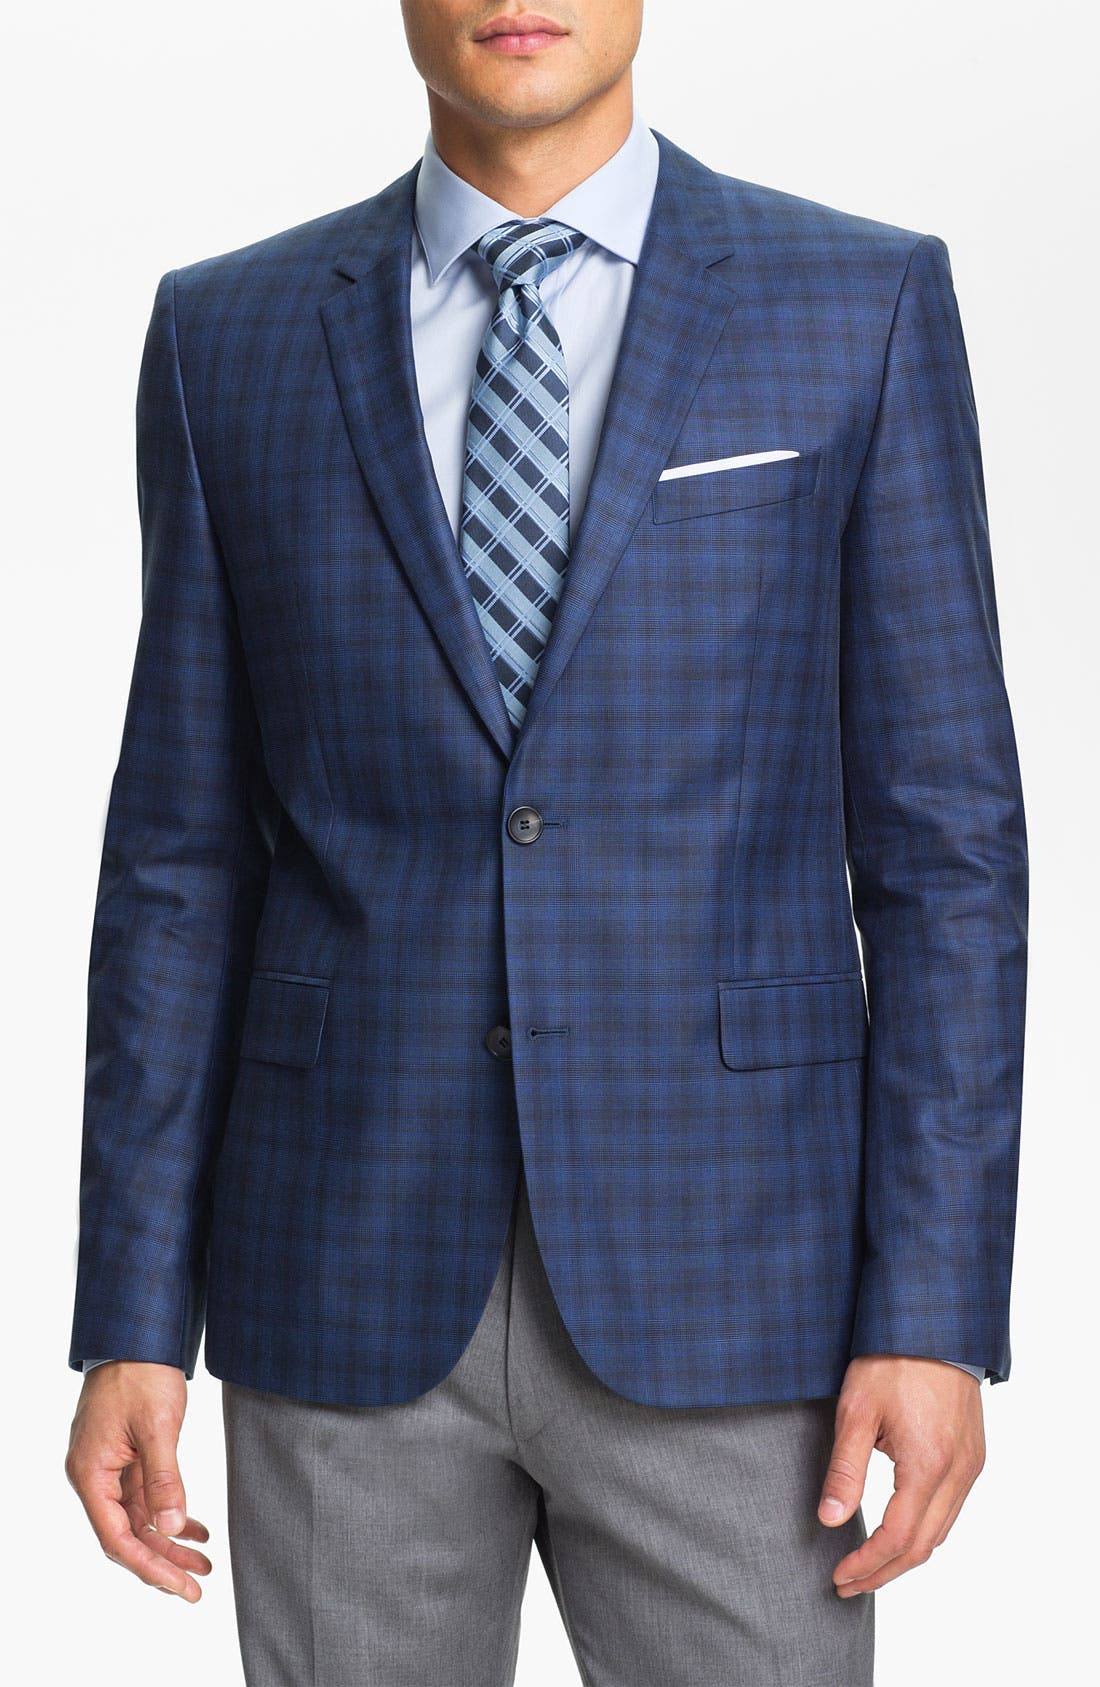 Alternate Image 1 Selected - HUGO 'Amares' Trim Fit Plaid Sportcoat